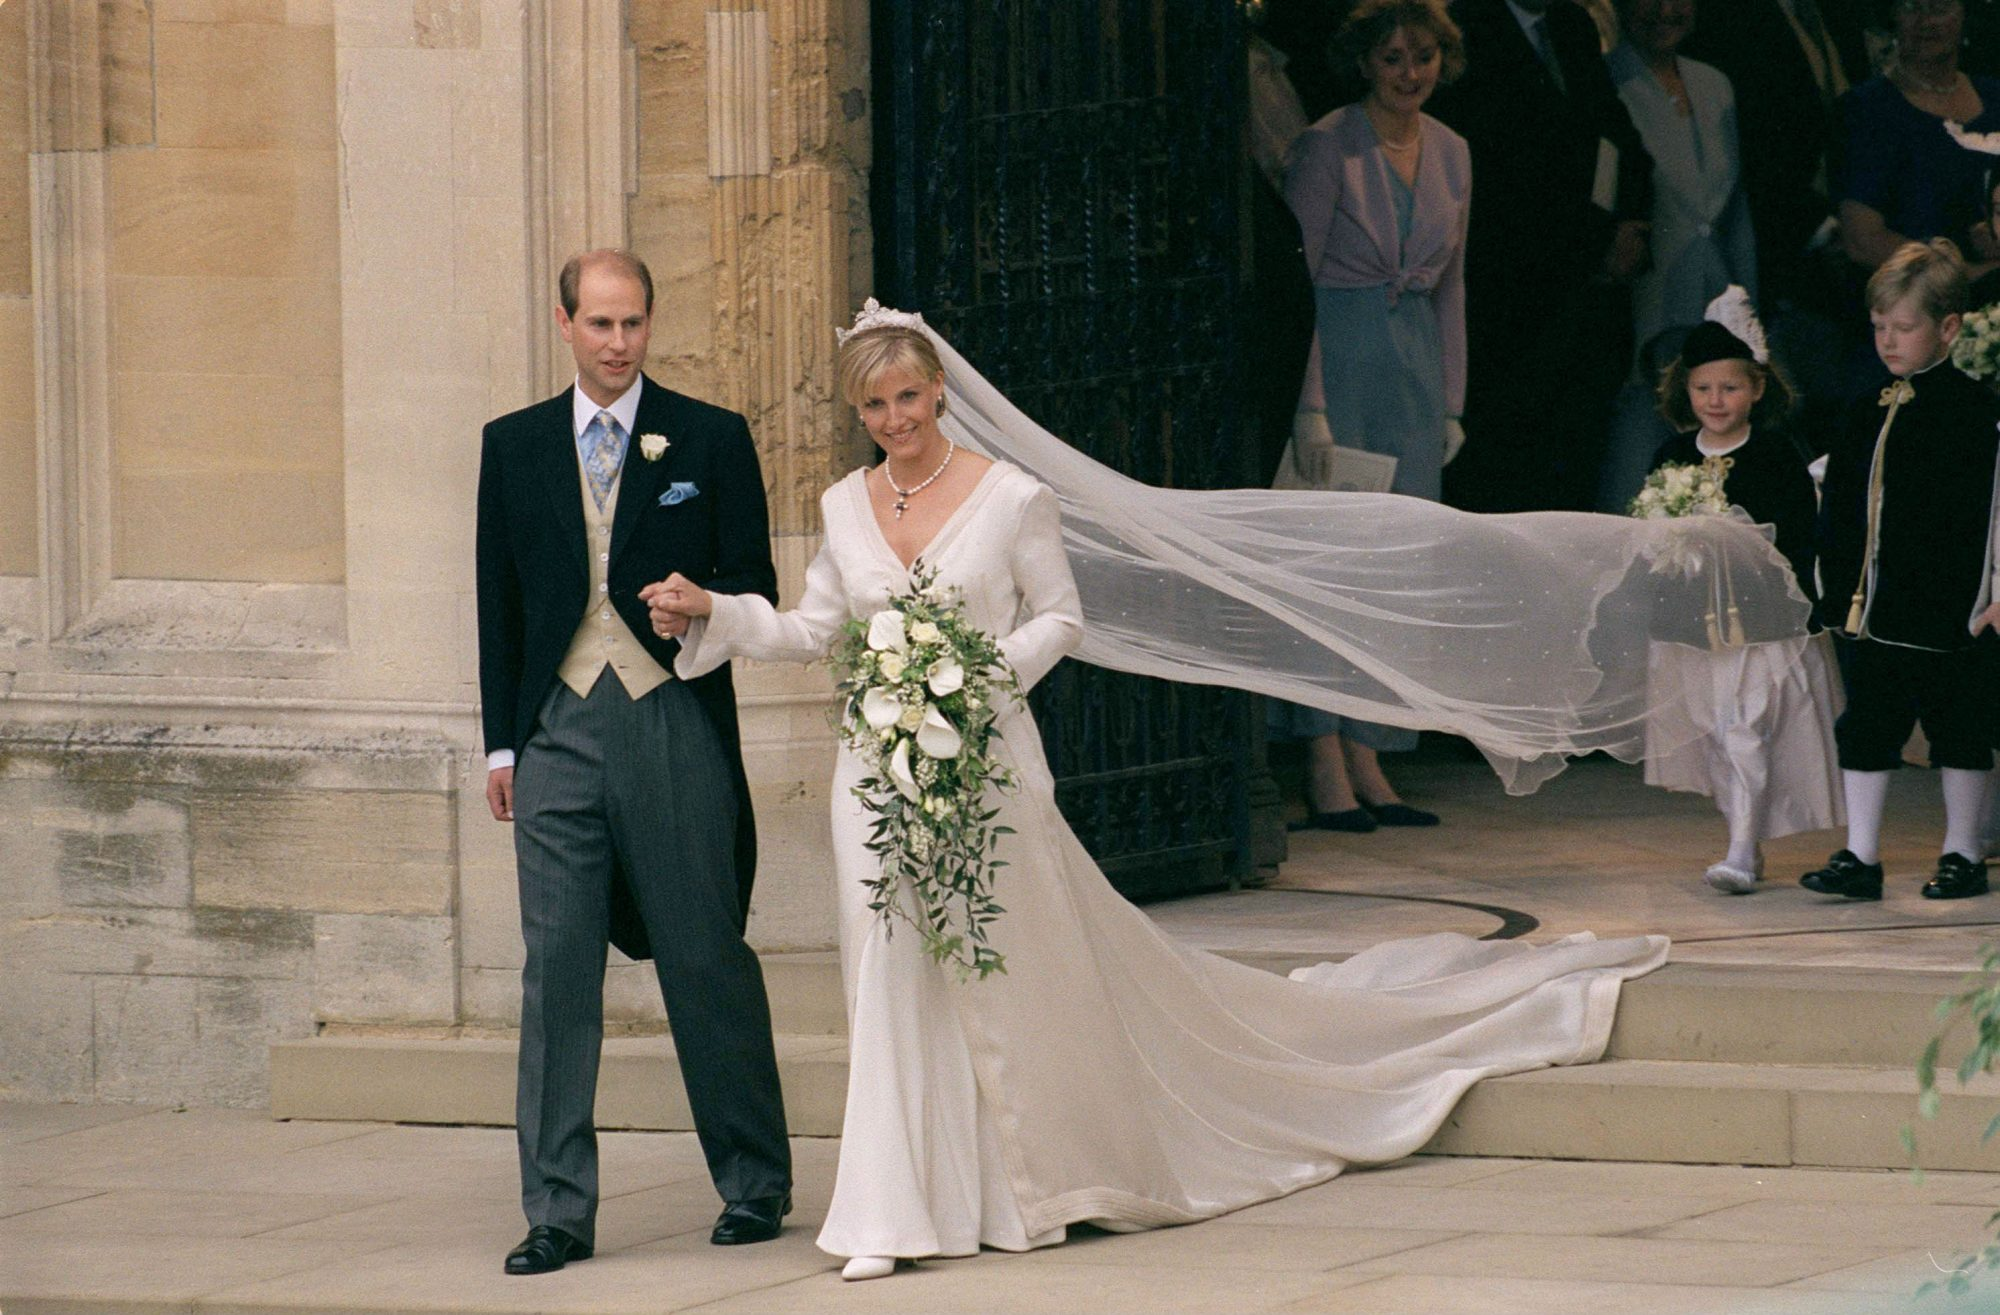 Wedding Bouquet: Sophie, Countess of Wessex